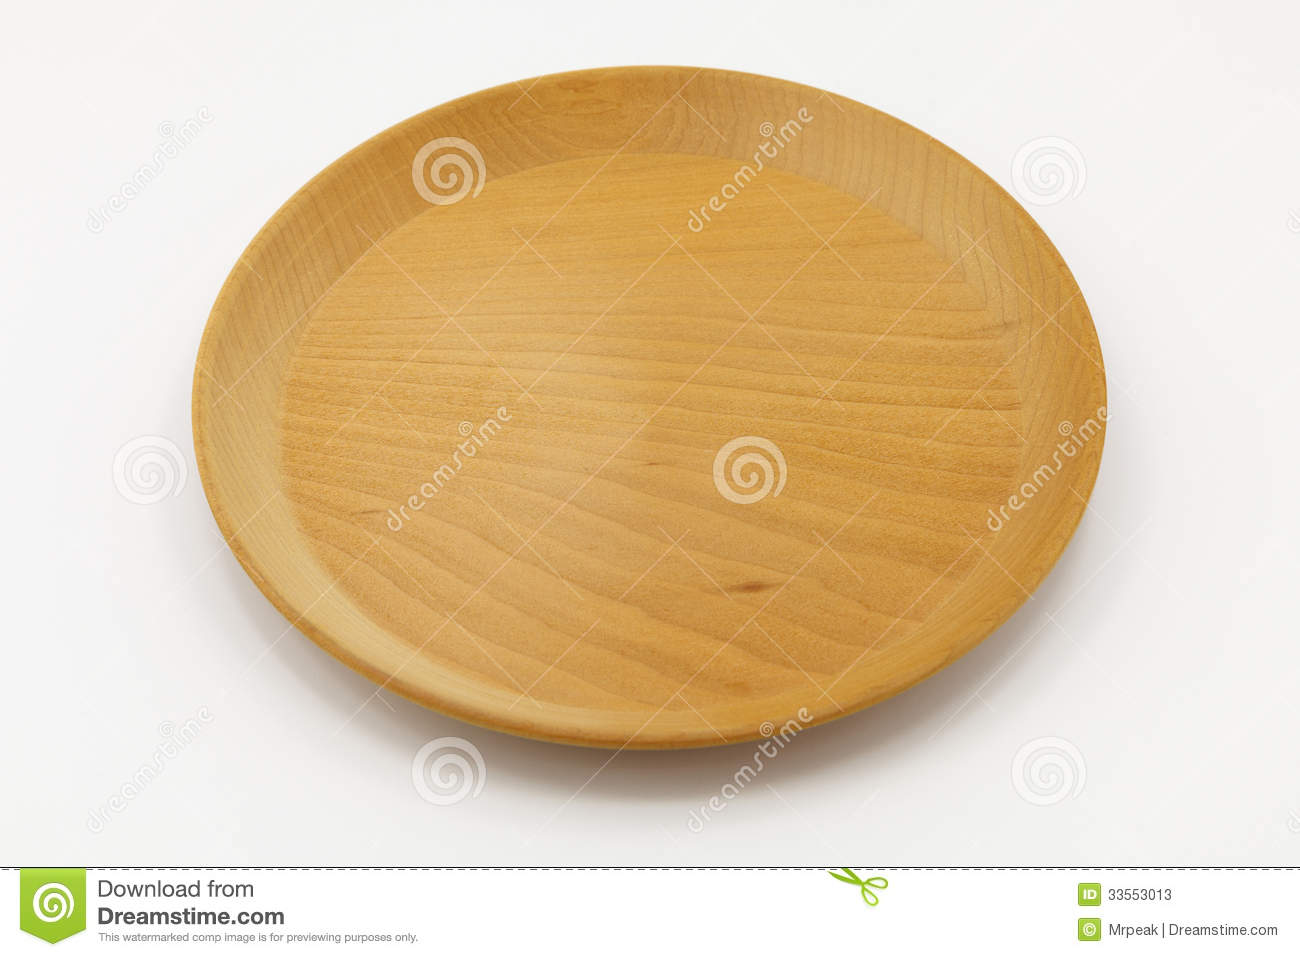 Wooden dish on isolated background